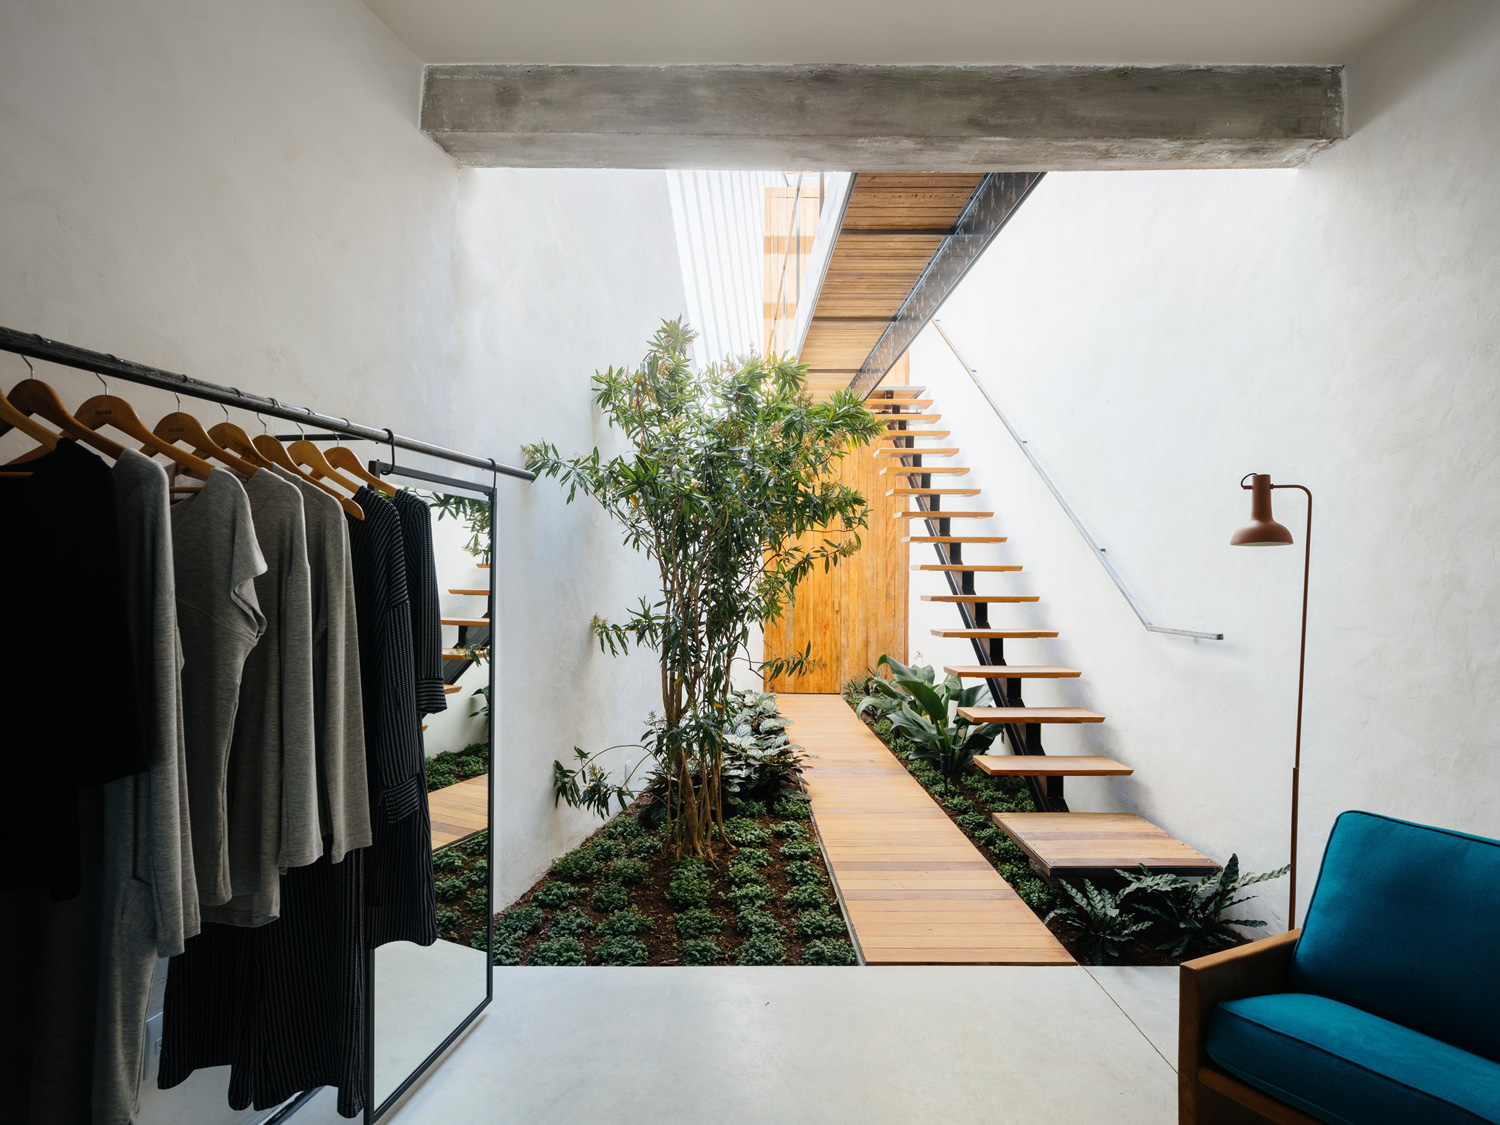 Retail store with an indoor garden in são paulo brazil by vão yellowtrace